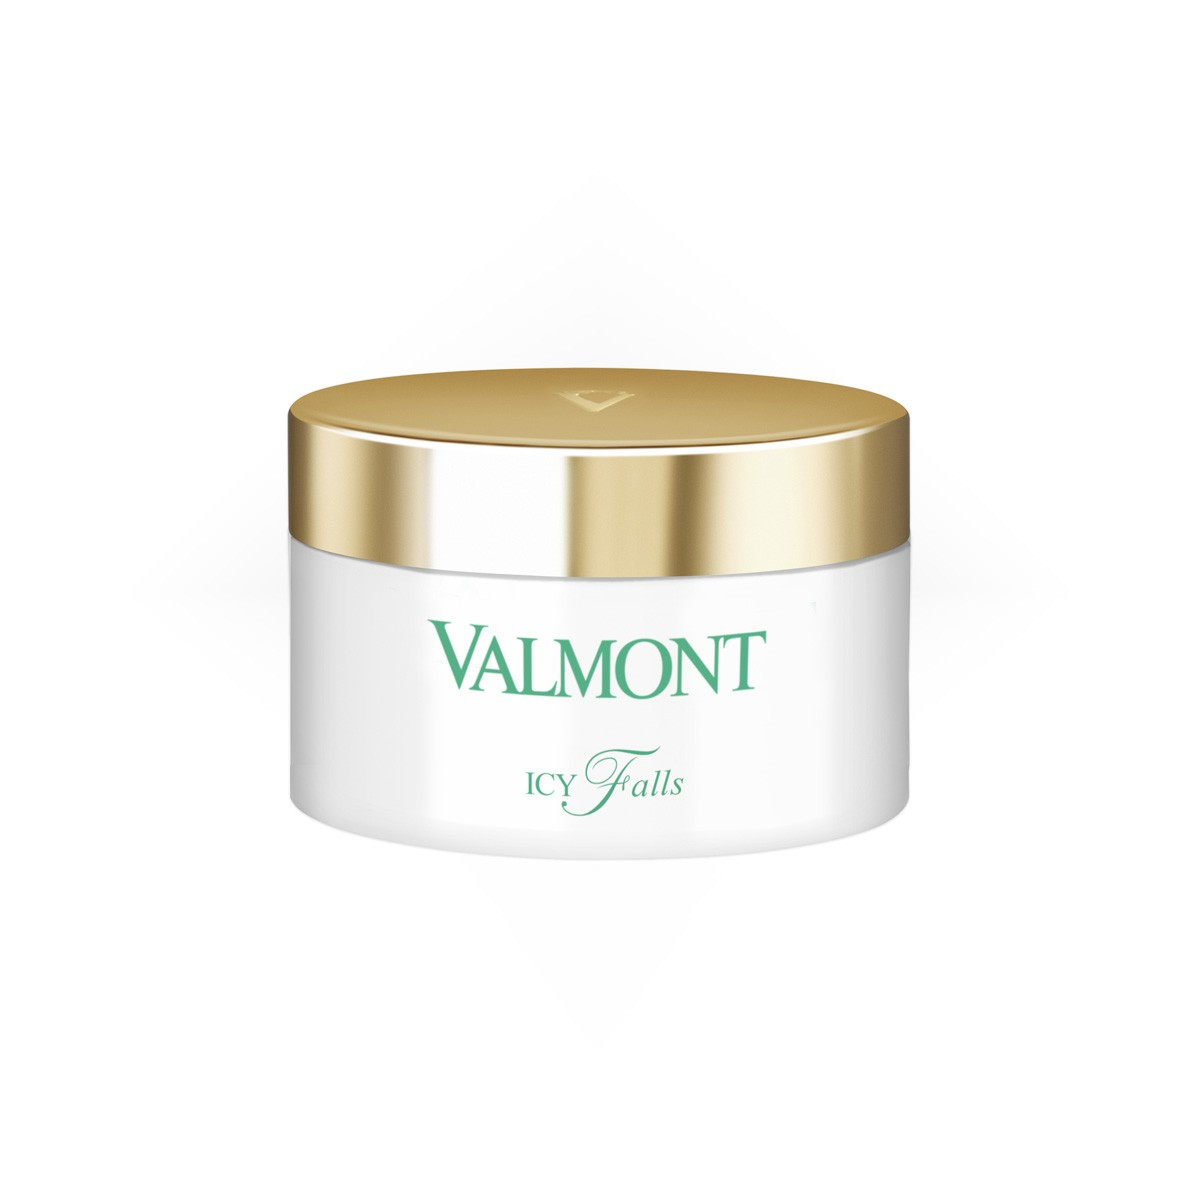 Valmont purity icy falls cream 200ml